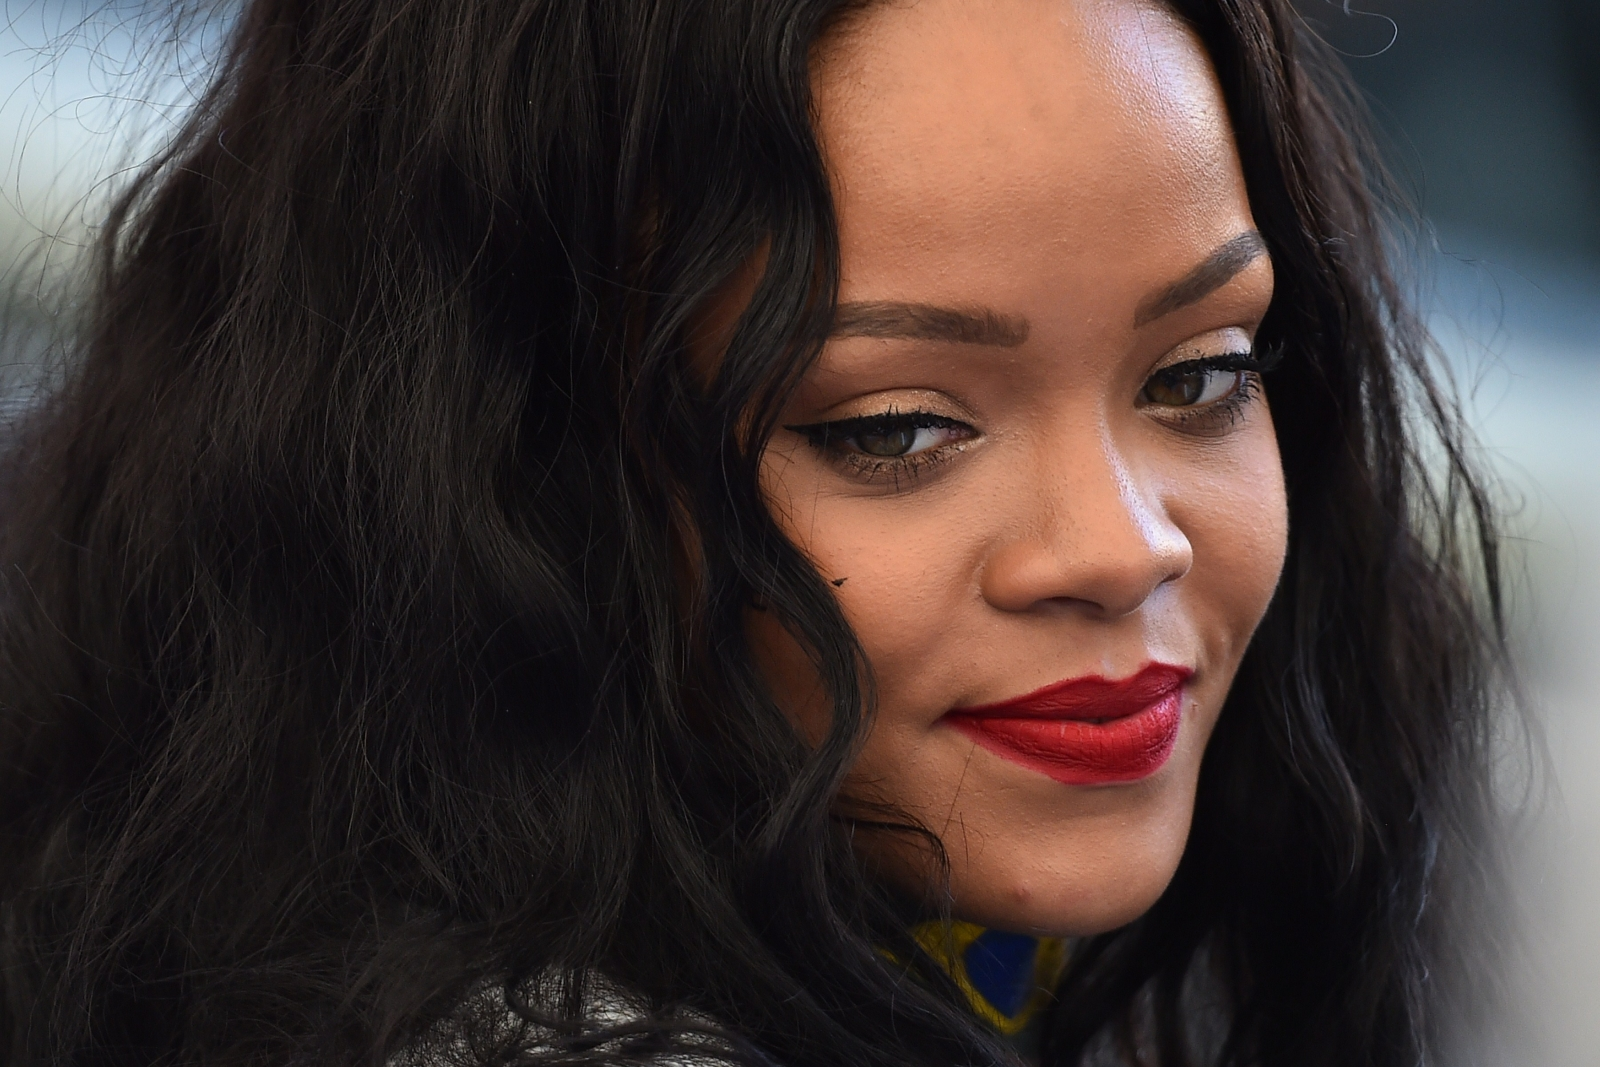 Rihanna wants Leonardo DiCaprio to get into shape as he is 'flabbier than her usual lovers'